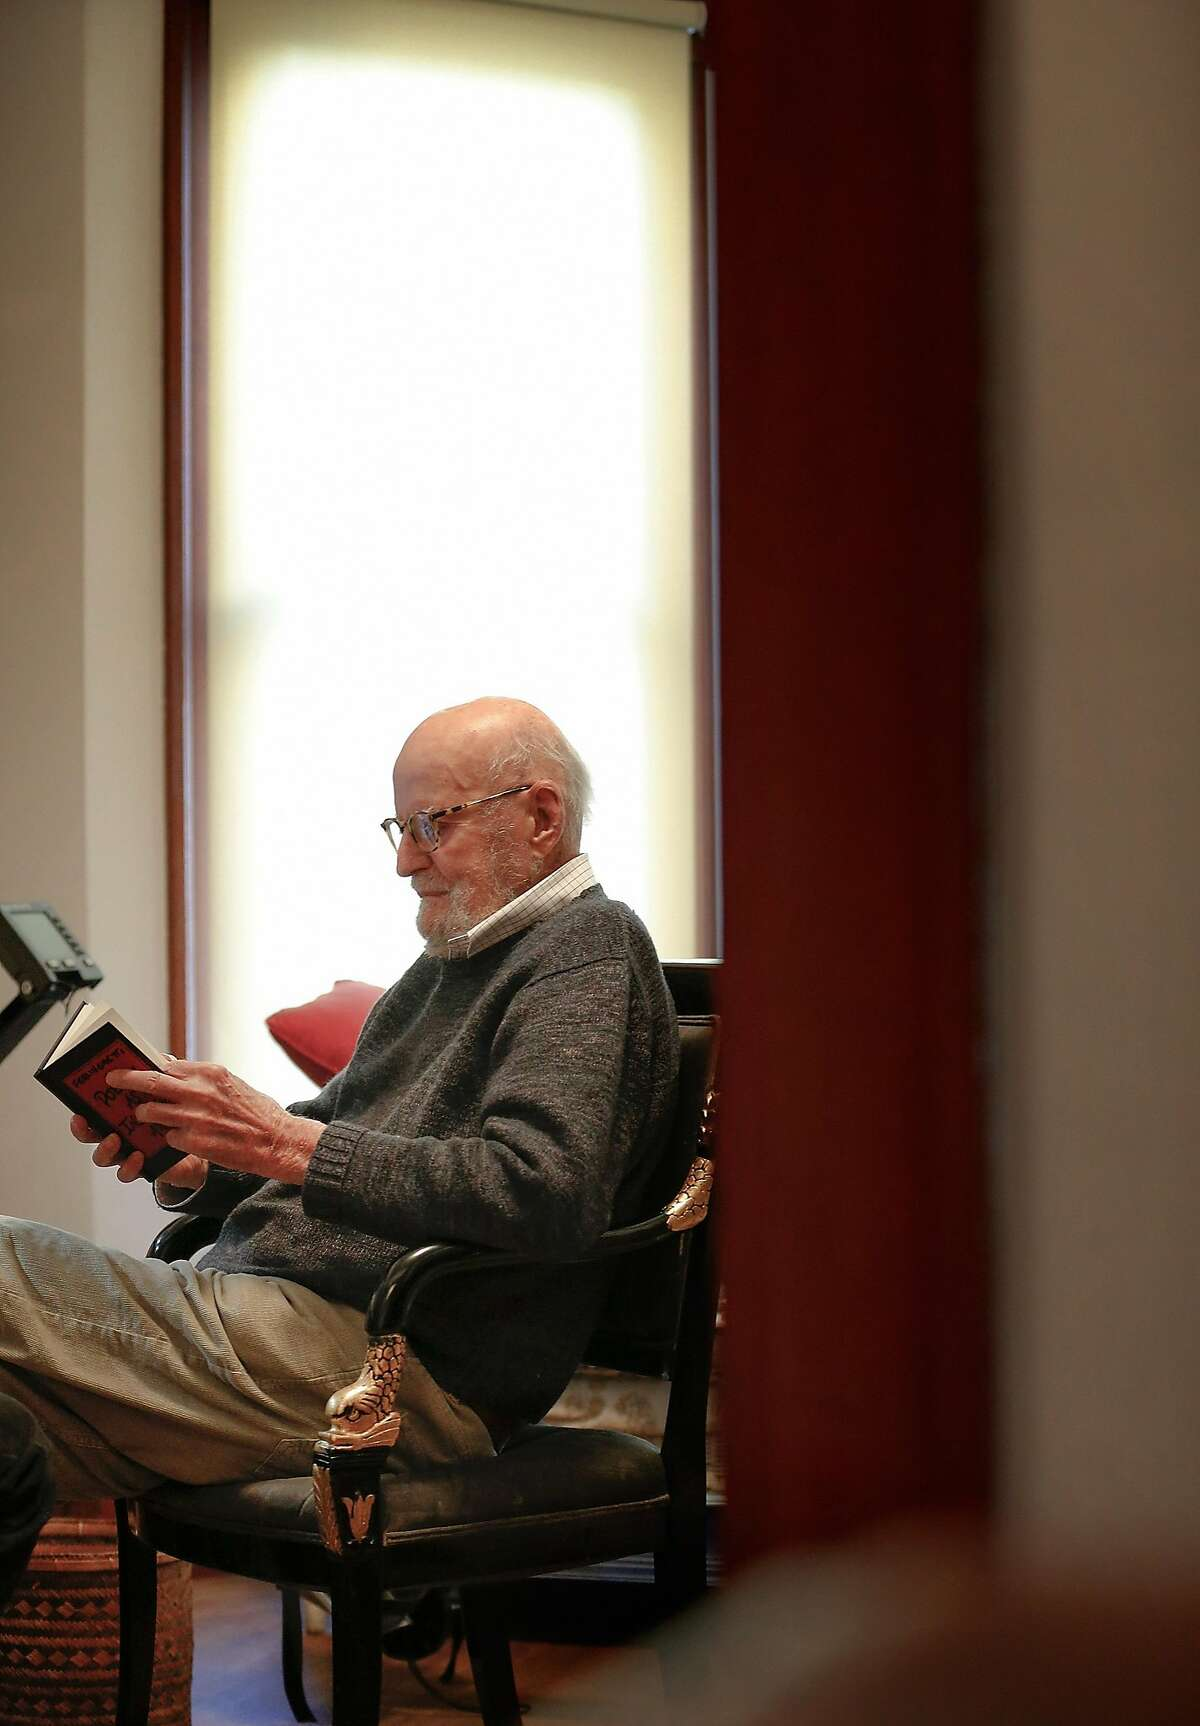 Poet Lawrence Ferlinghetti leafs through one of his books at his home in San Francisco, Calif., on Thursday, March 1, 2018. Ferlinghetti will be 99 on March 24.